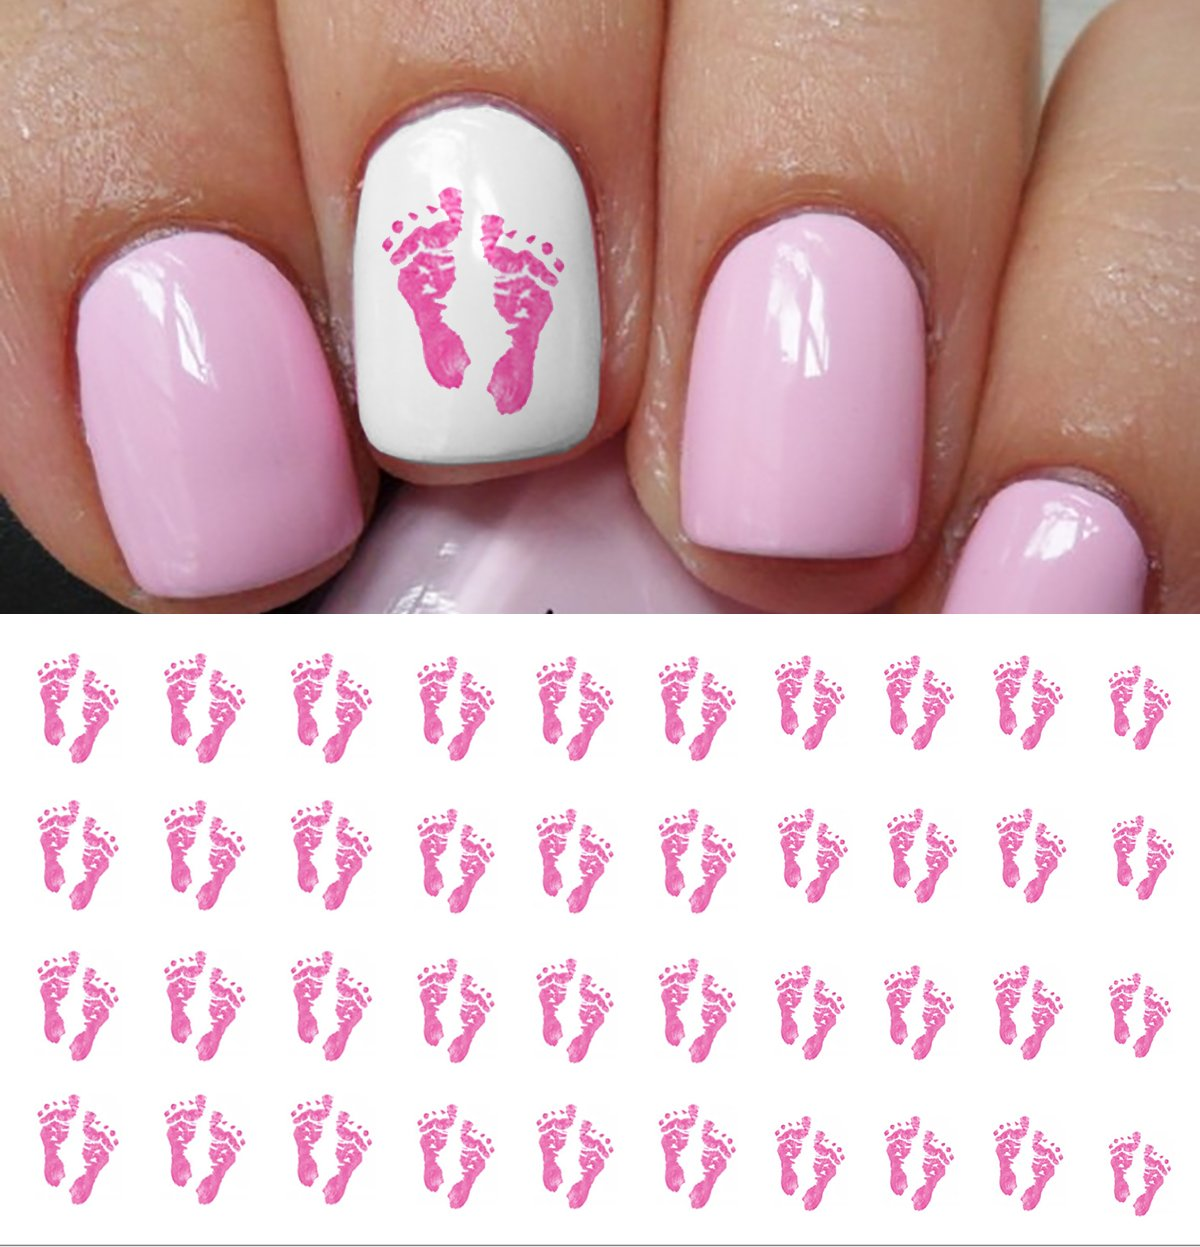 Pink Baby Footprints Water Slide Nail Art Decals   Salon Quality Great Gift  For Baby Shower